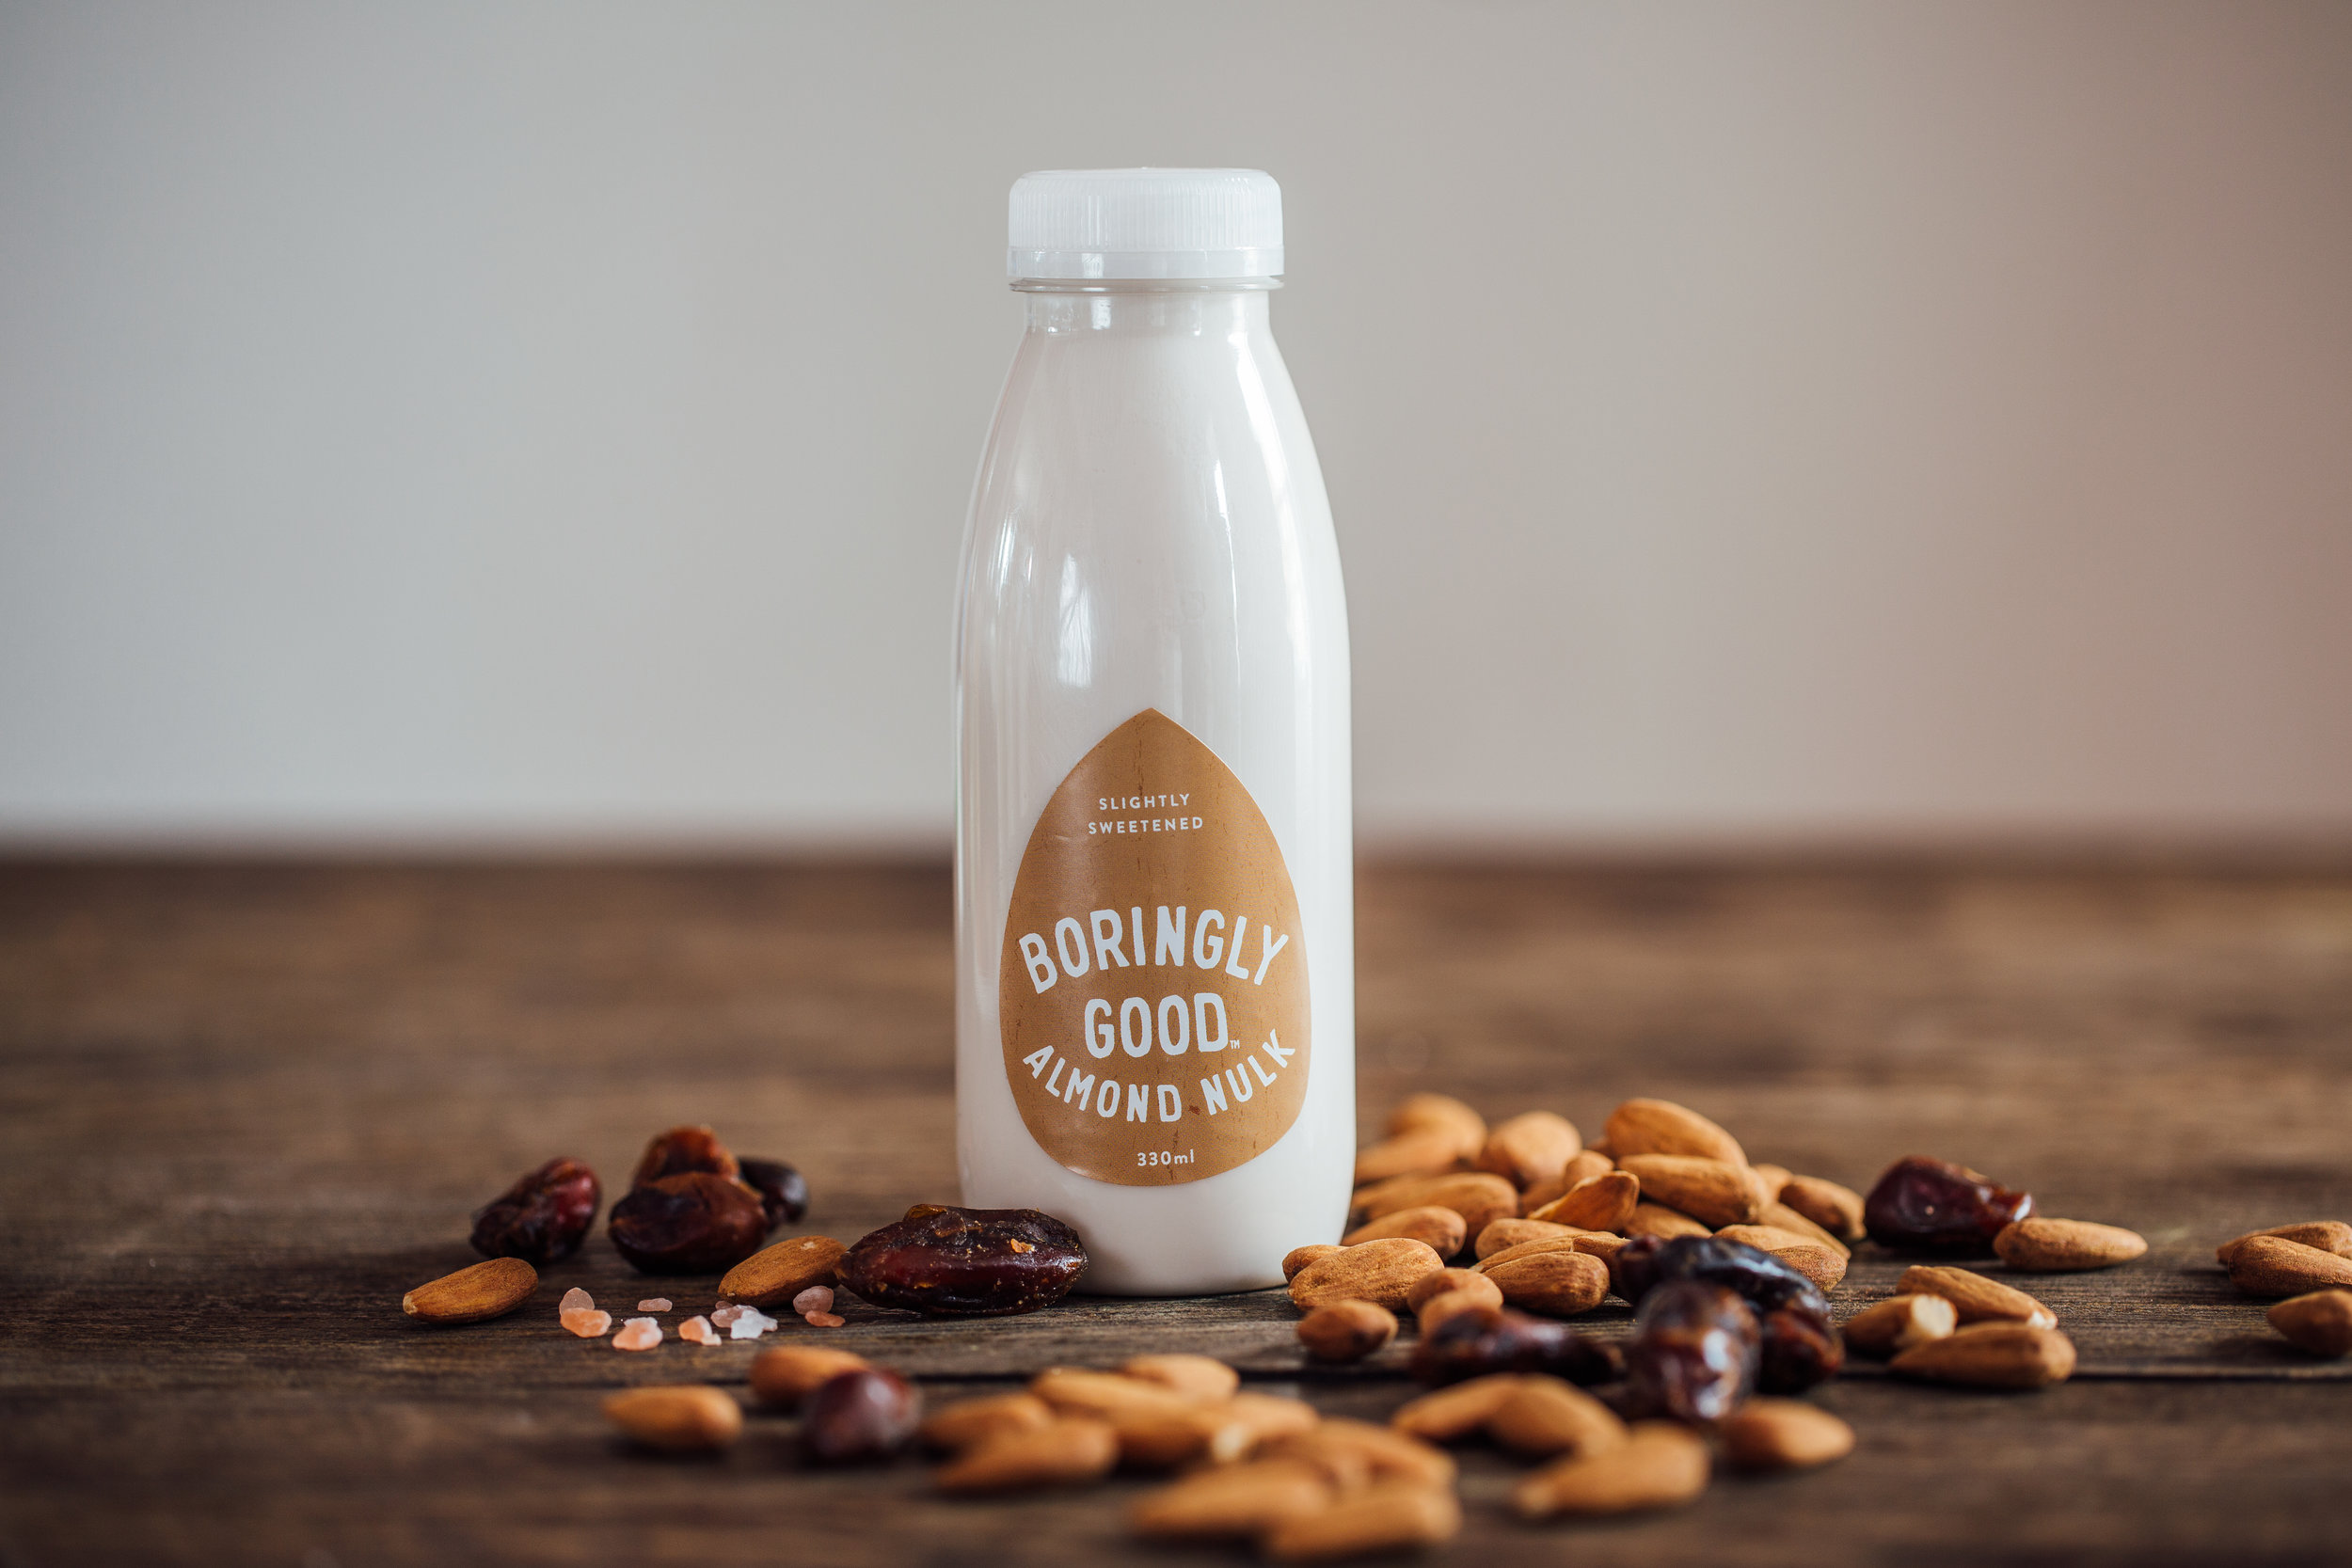 Slightly Sweetened - Deliciously more-ish,with a hint of date - it's milk, it's a drink, it's yumIngredients:Almonds (9%), Water, Dates, Pink Himalayan Salt. Typical nutritional values per 100ml:Energy 294KJ (71kcal),Fat 5.6g (saturates) (0.6g),Carbohydrates 2.7g (sugar 2.4g),Protein 2.5g,Salt 0.1g